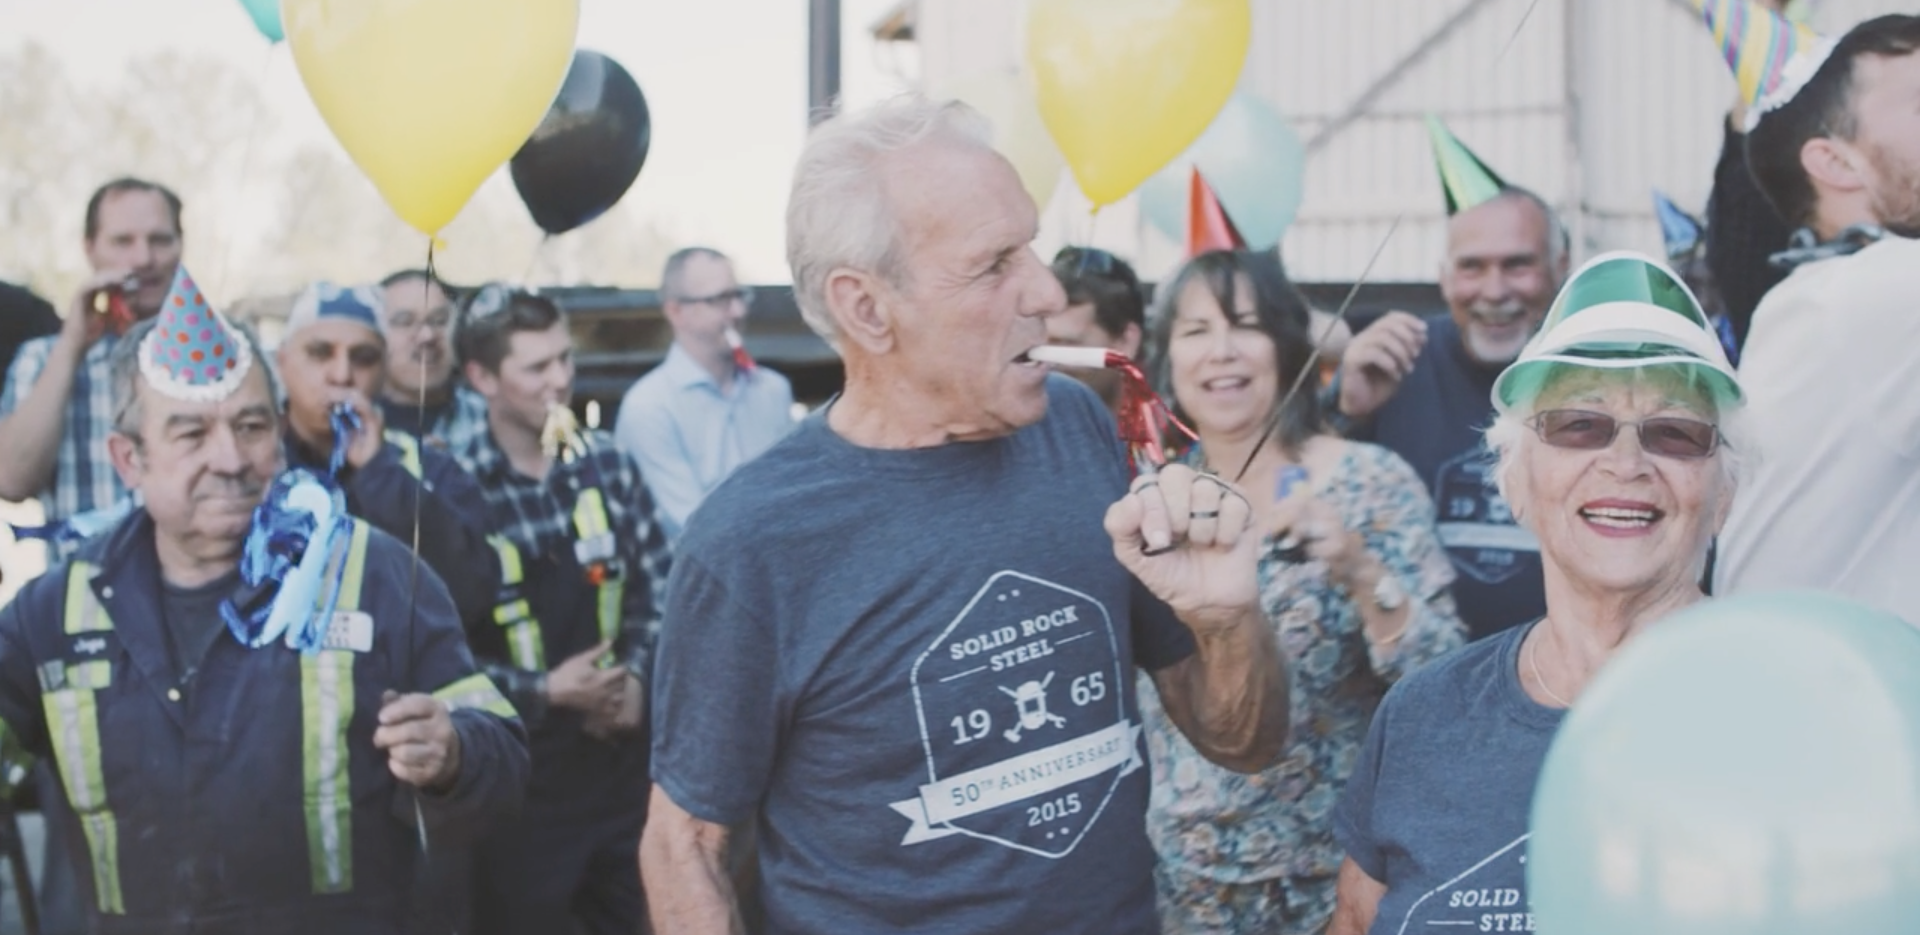 2015 - Solid Rock Steel founders Benny & Grace Steunenberg celebrate the company's 50th anniversary with the team.